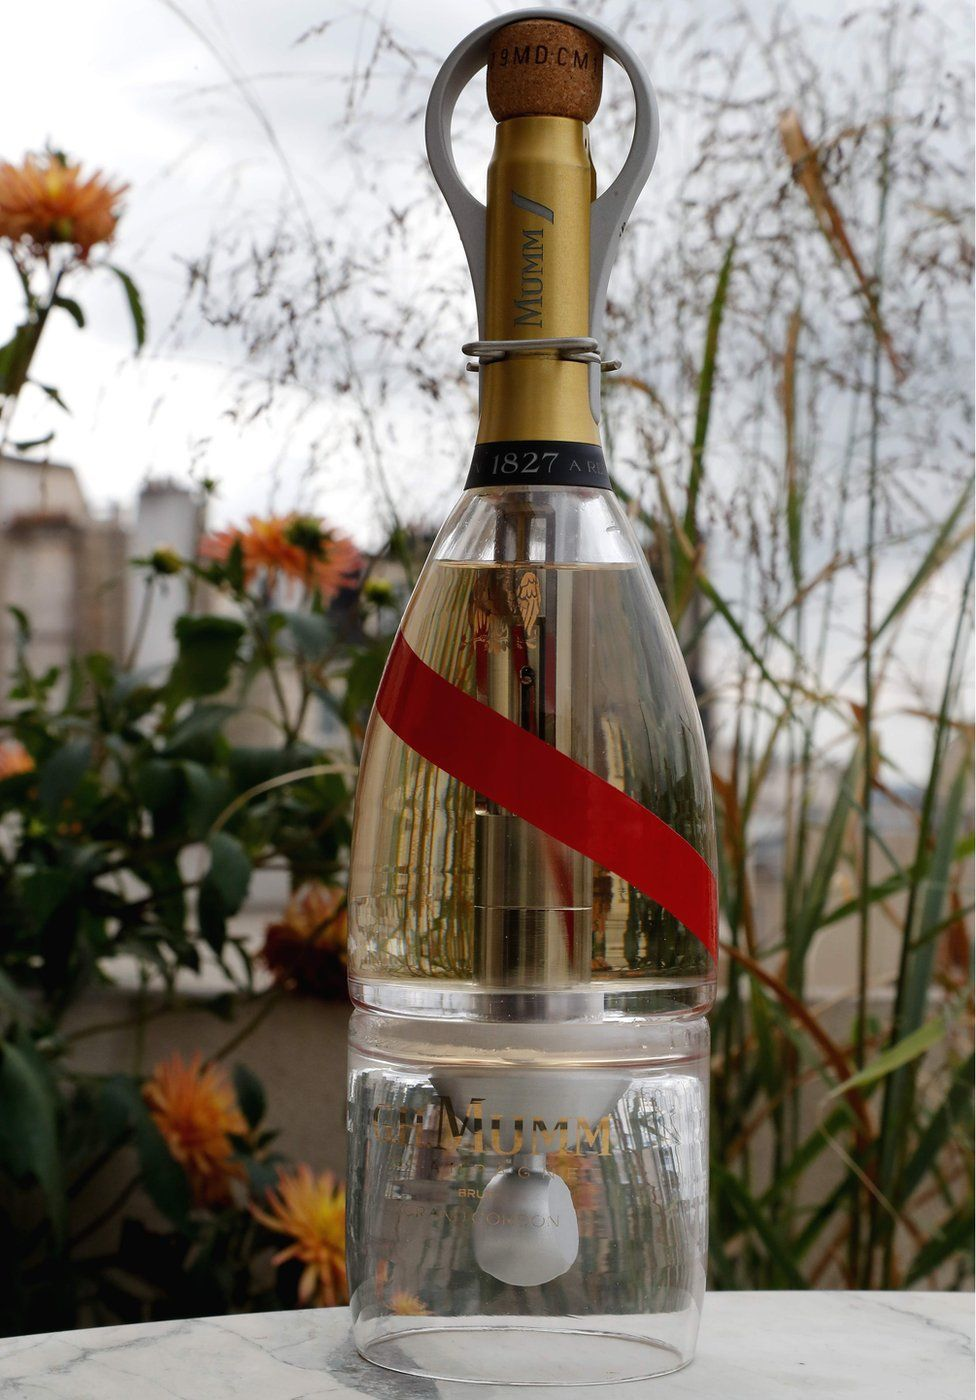 A bottle of Mumm Grand Cordon Stellar champagne, designed by French Interior designer Octave de Gaulle, in Paris, 6 September 2018